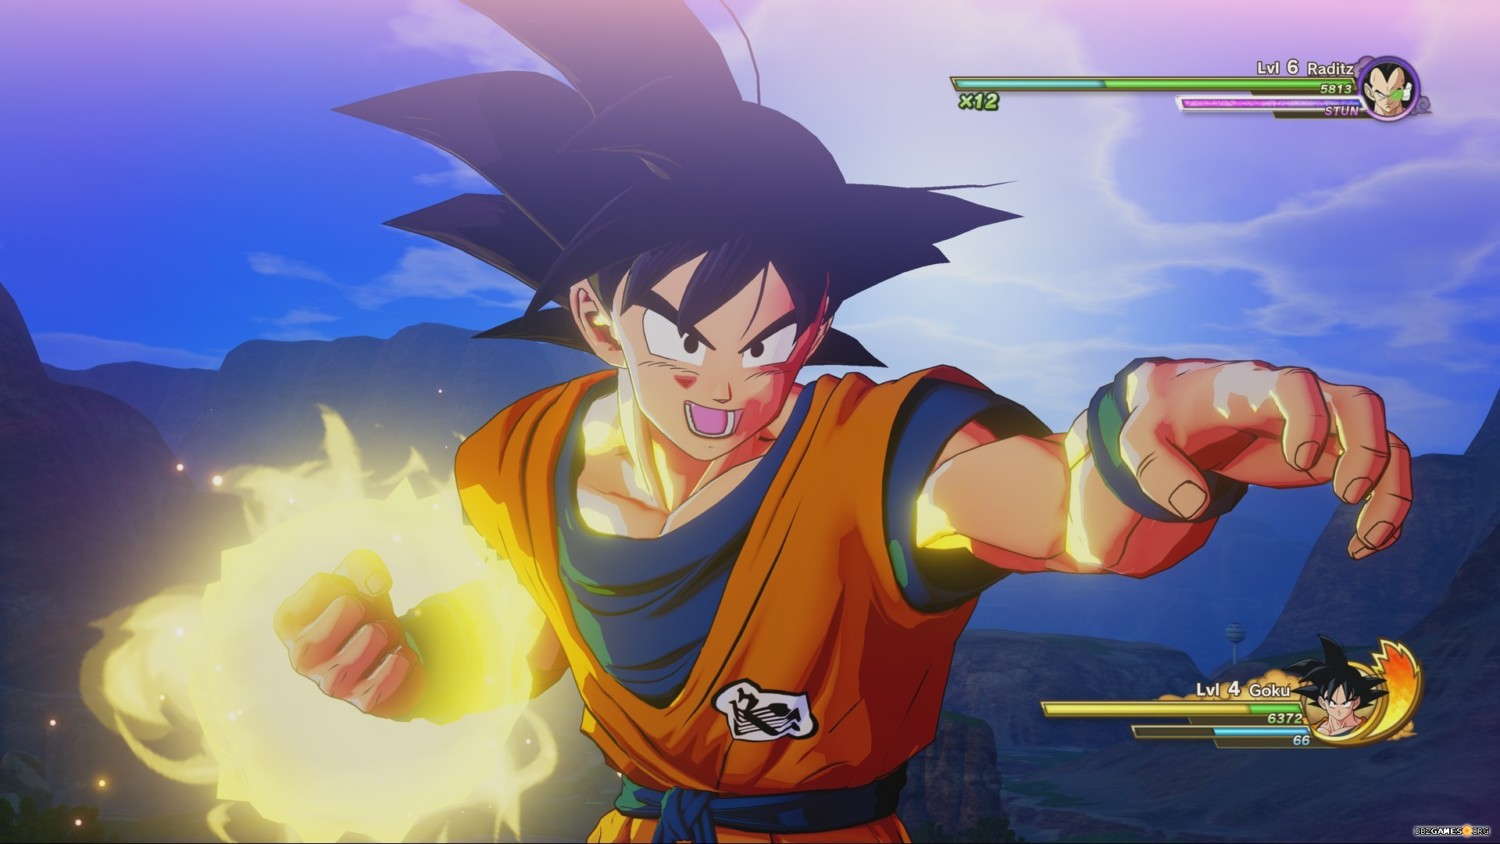 Bandai Namco Currently Has No Plans To Bring Dragon Ball Z: Kakarot To Switch